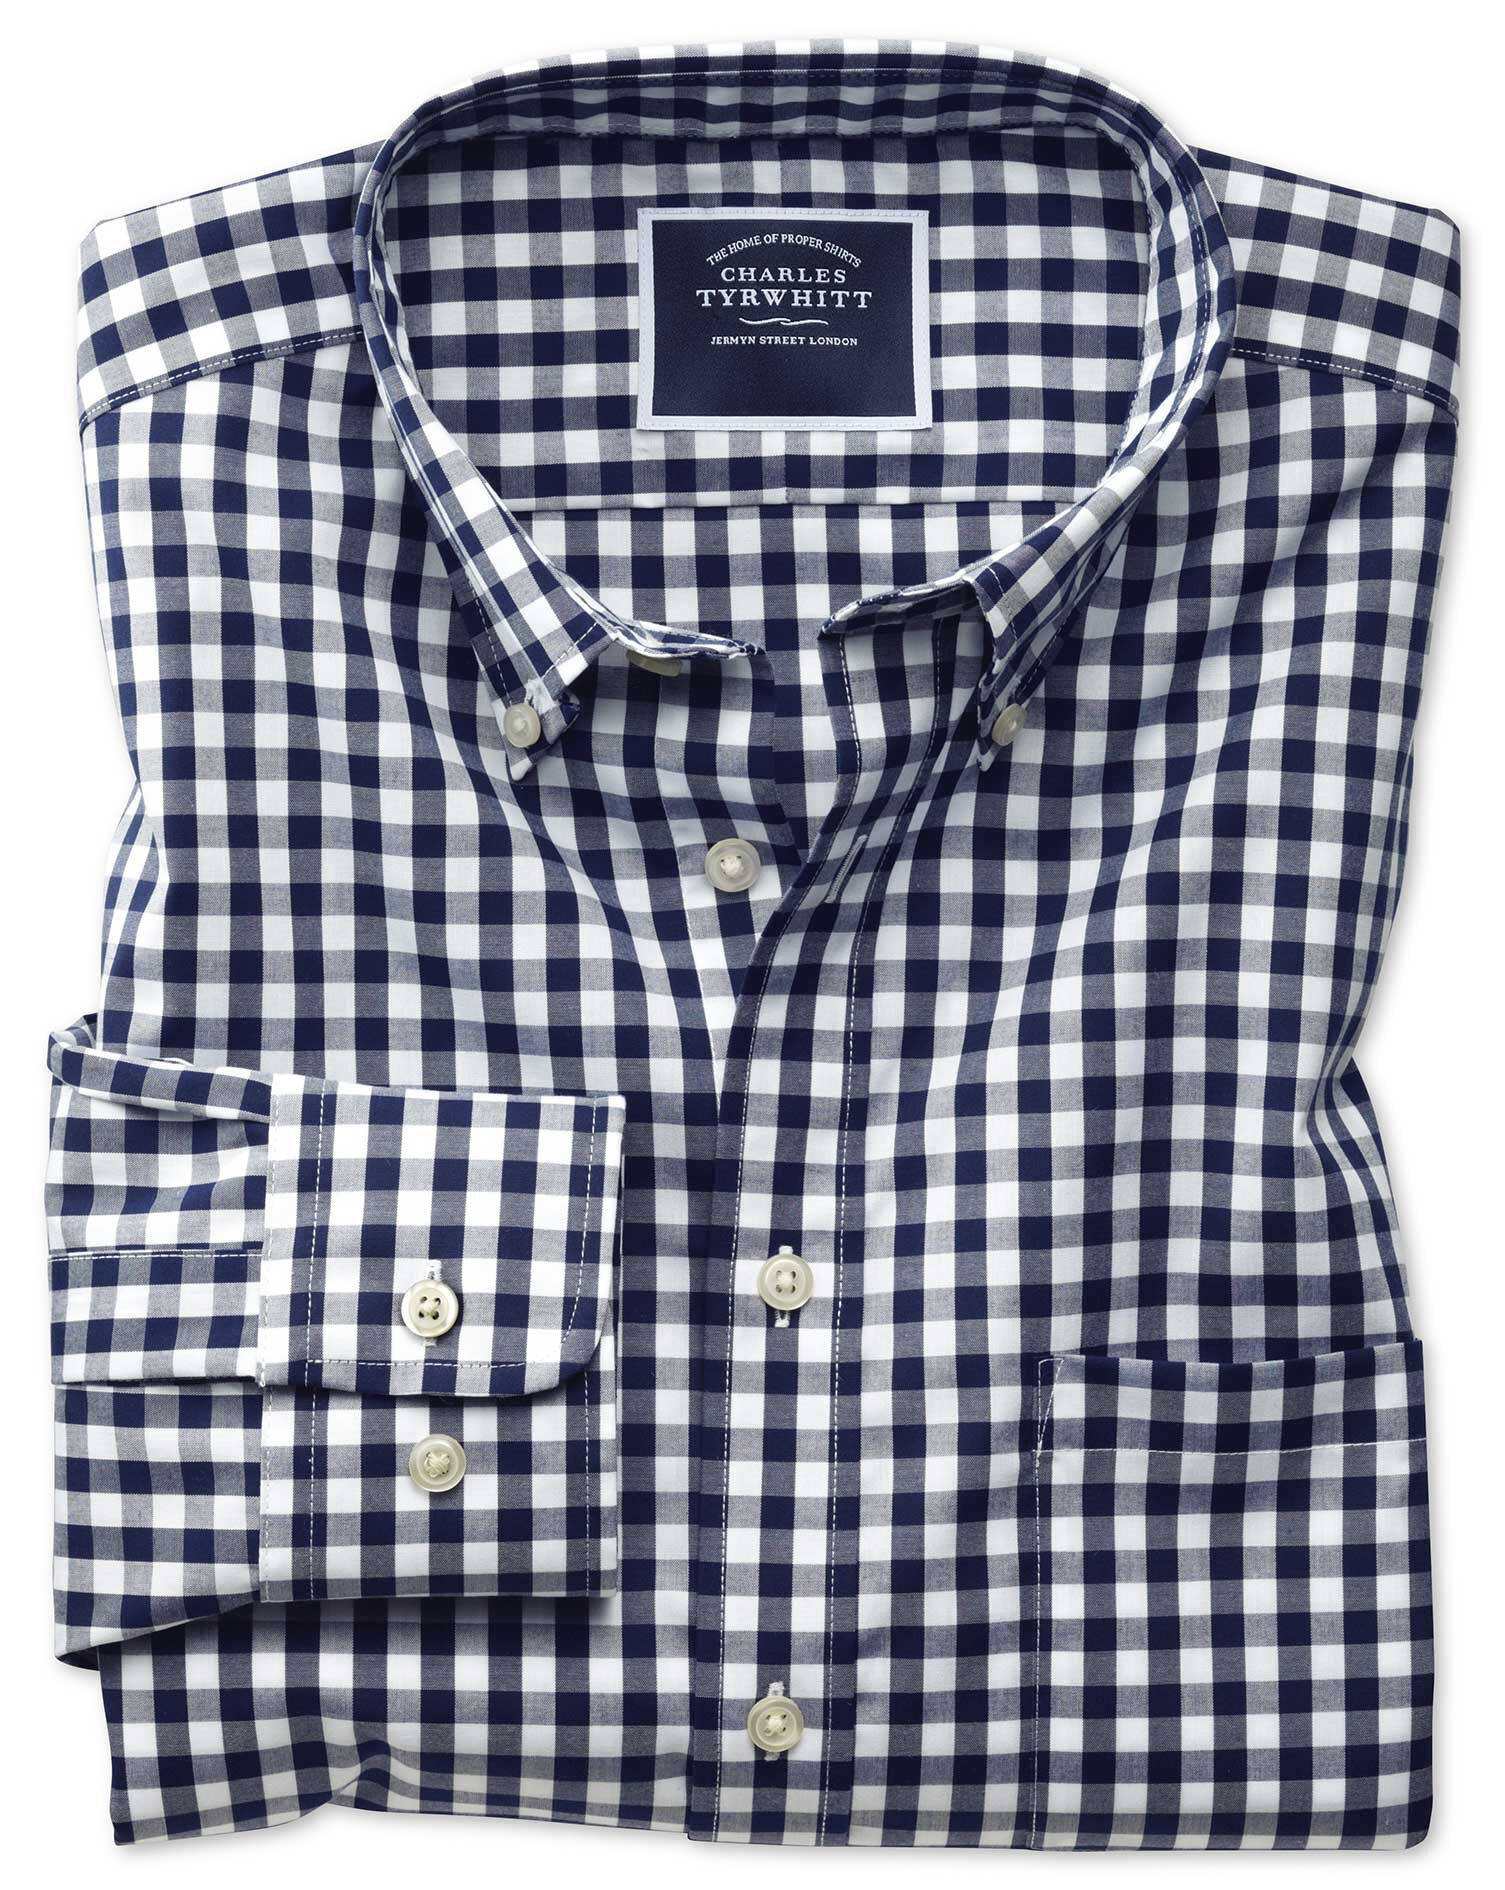 Slim Fit Non-Iron Poplin Navy Gingham Cotton Shirt Single Cuff Size Large by Charles Tyrwhitt